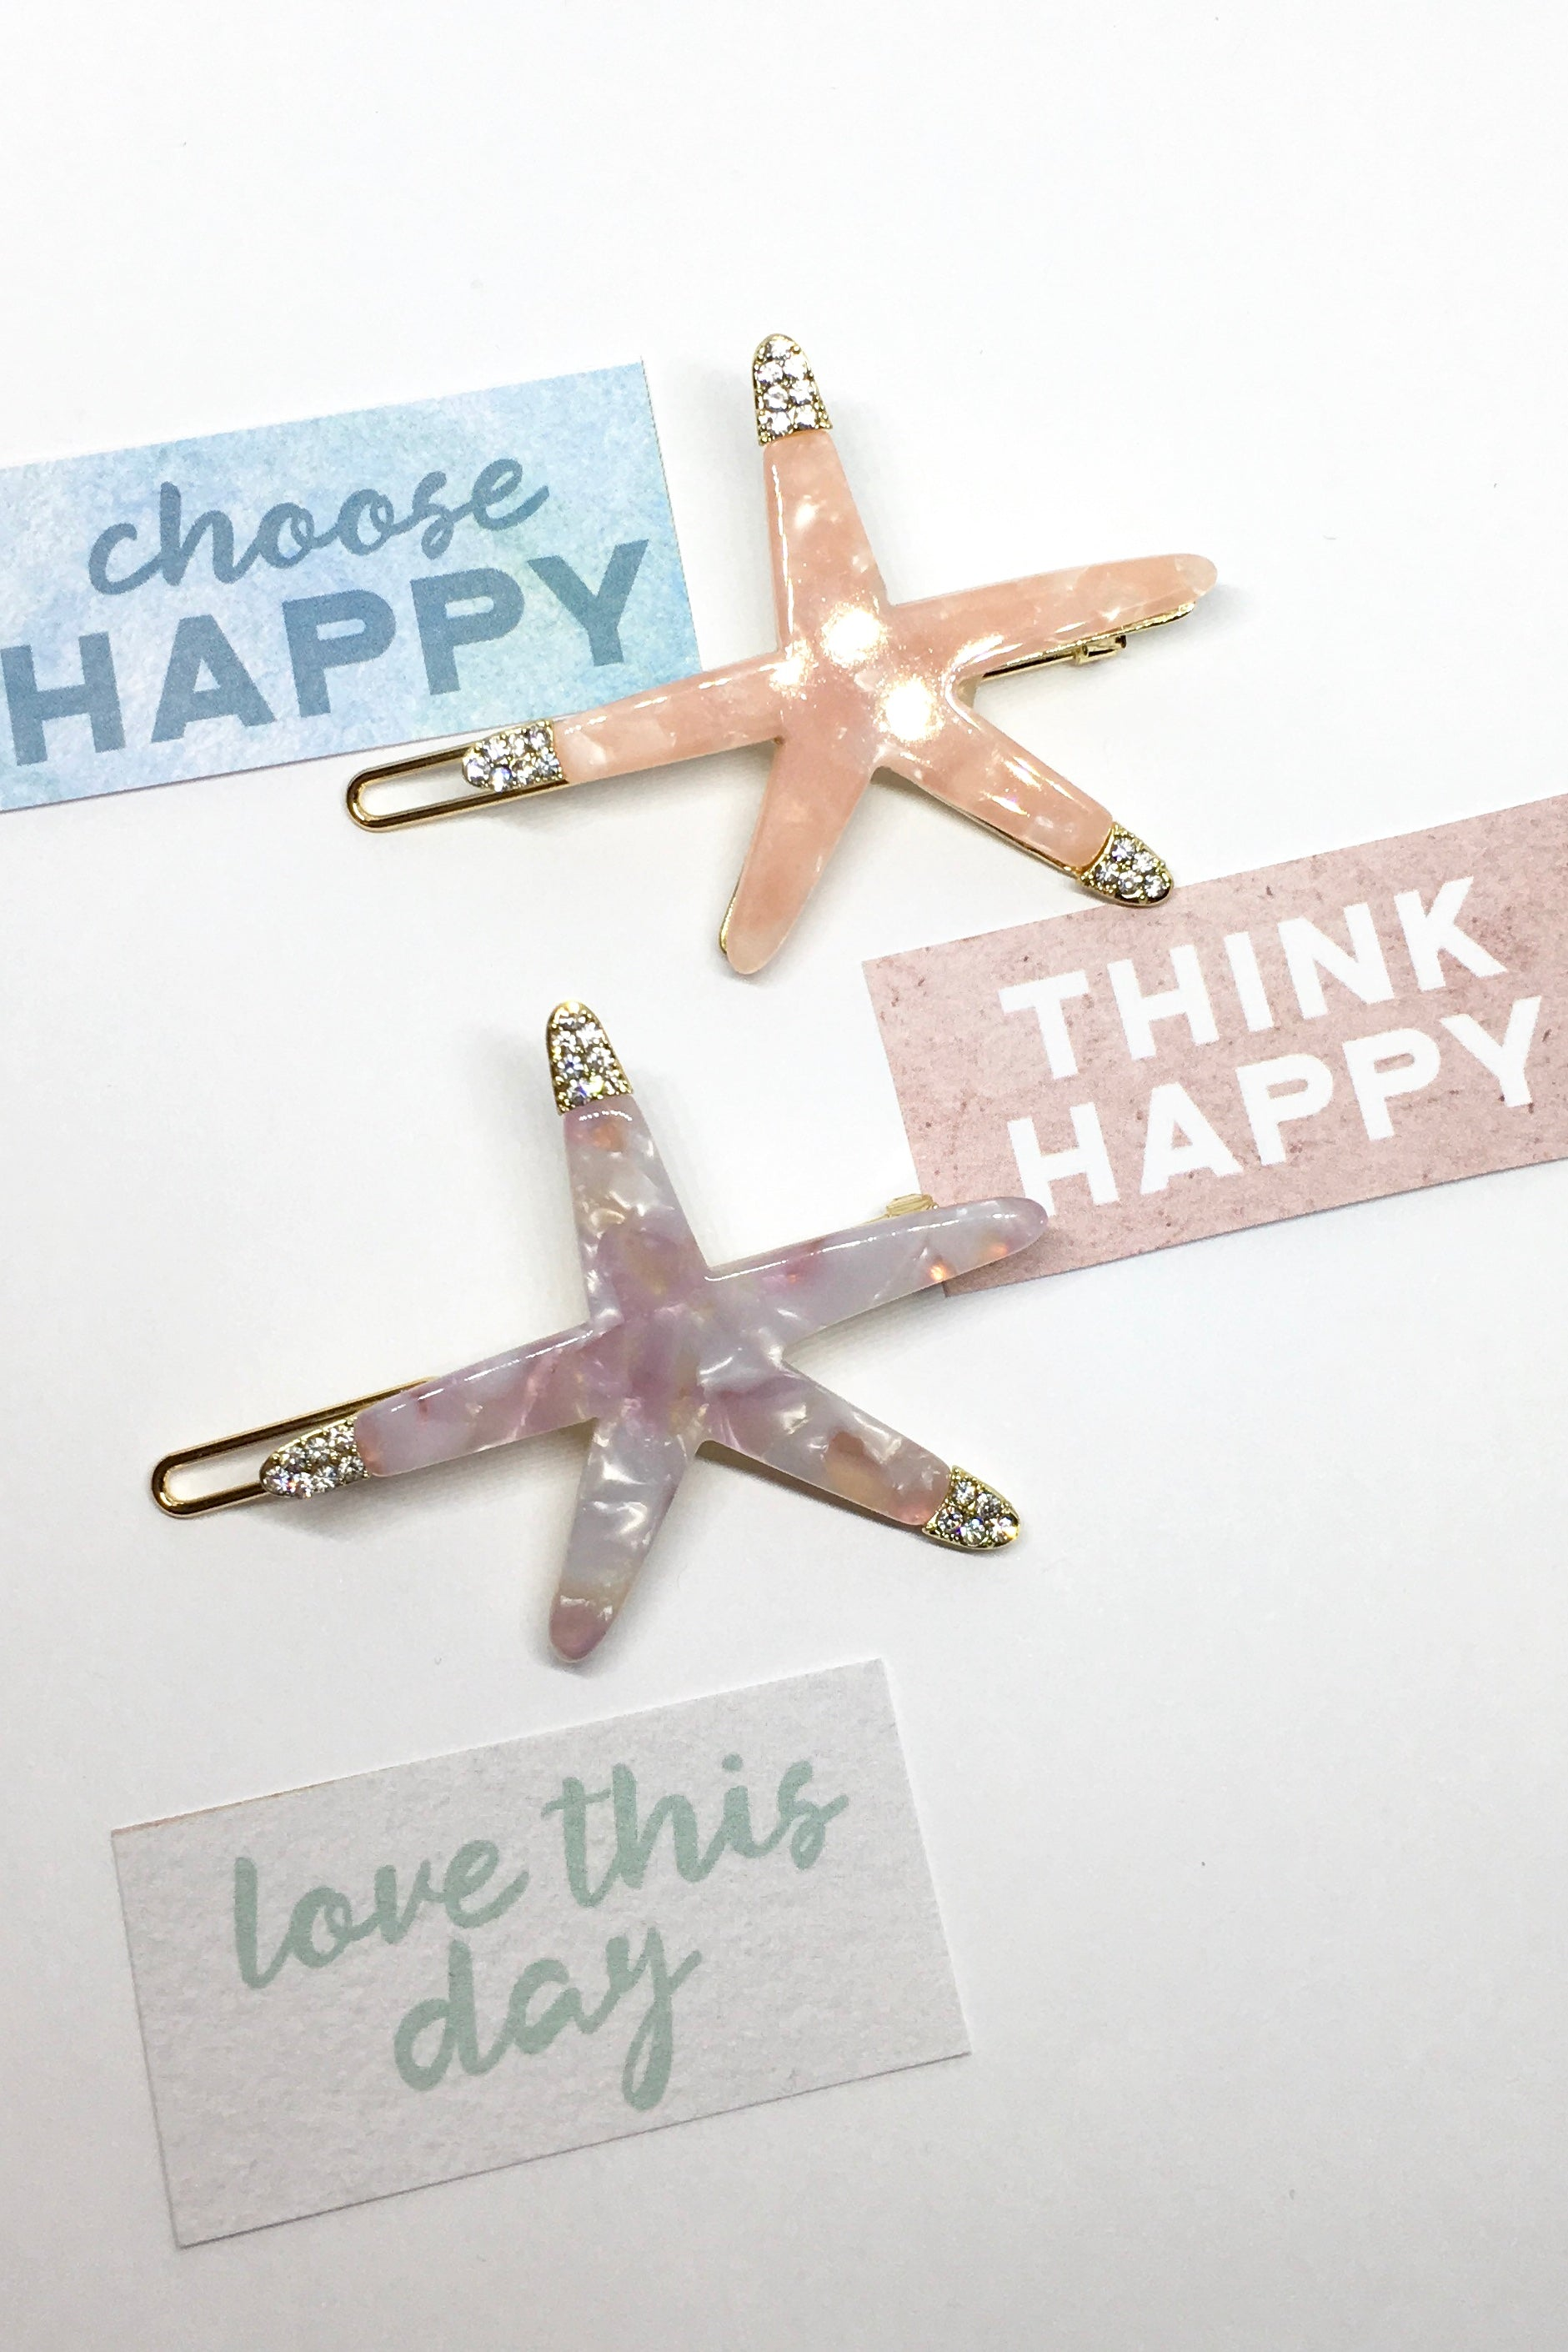 Hair accessories. Beachy starfish clips with diamantes. Pink or mauve marble. 90s inspired, perfect for an ocean lover and beach babe.